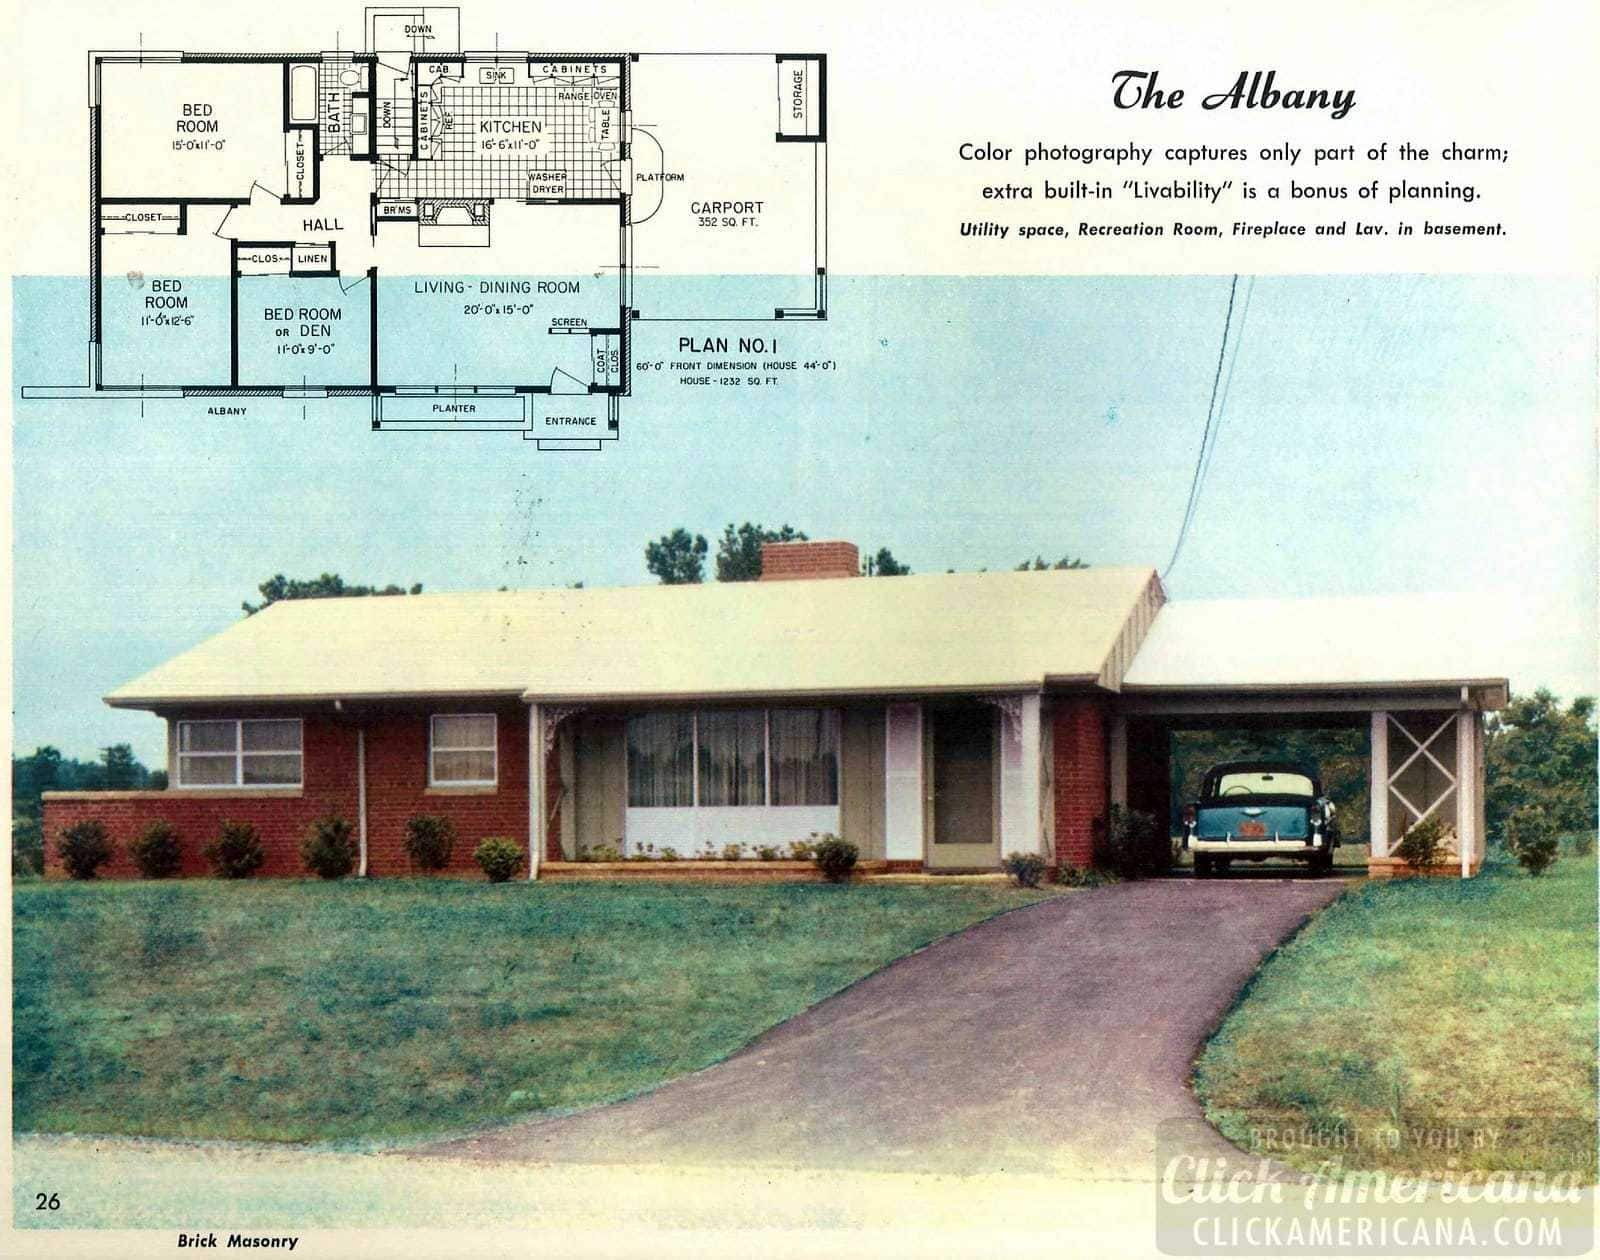 The Albany: Home design plans from 1958